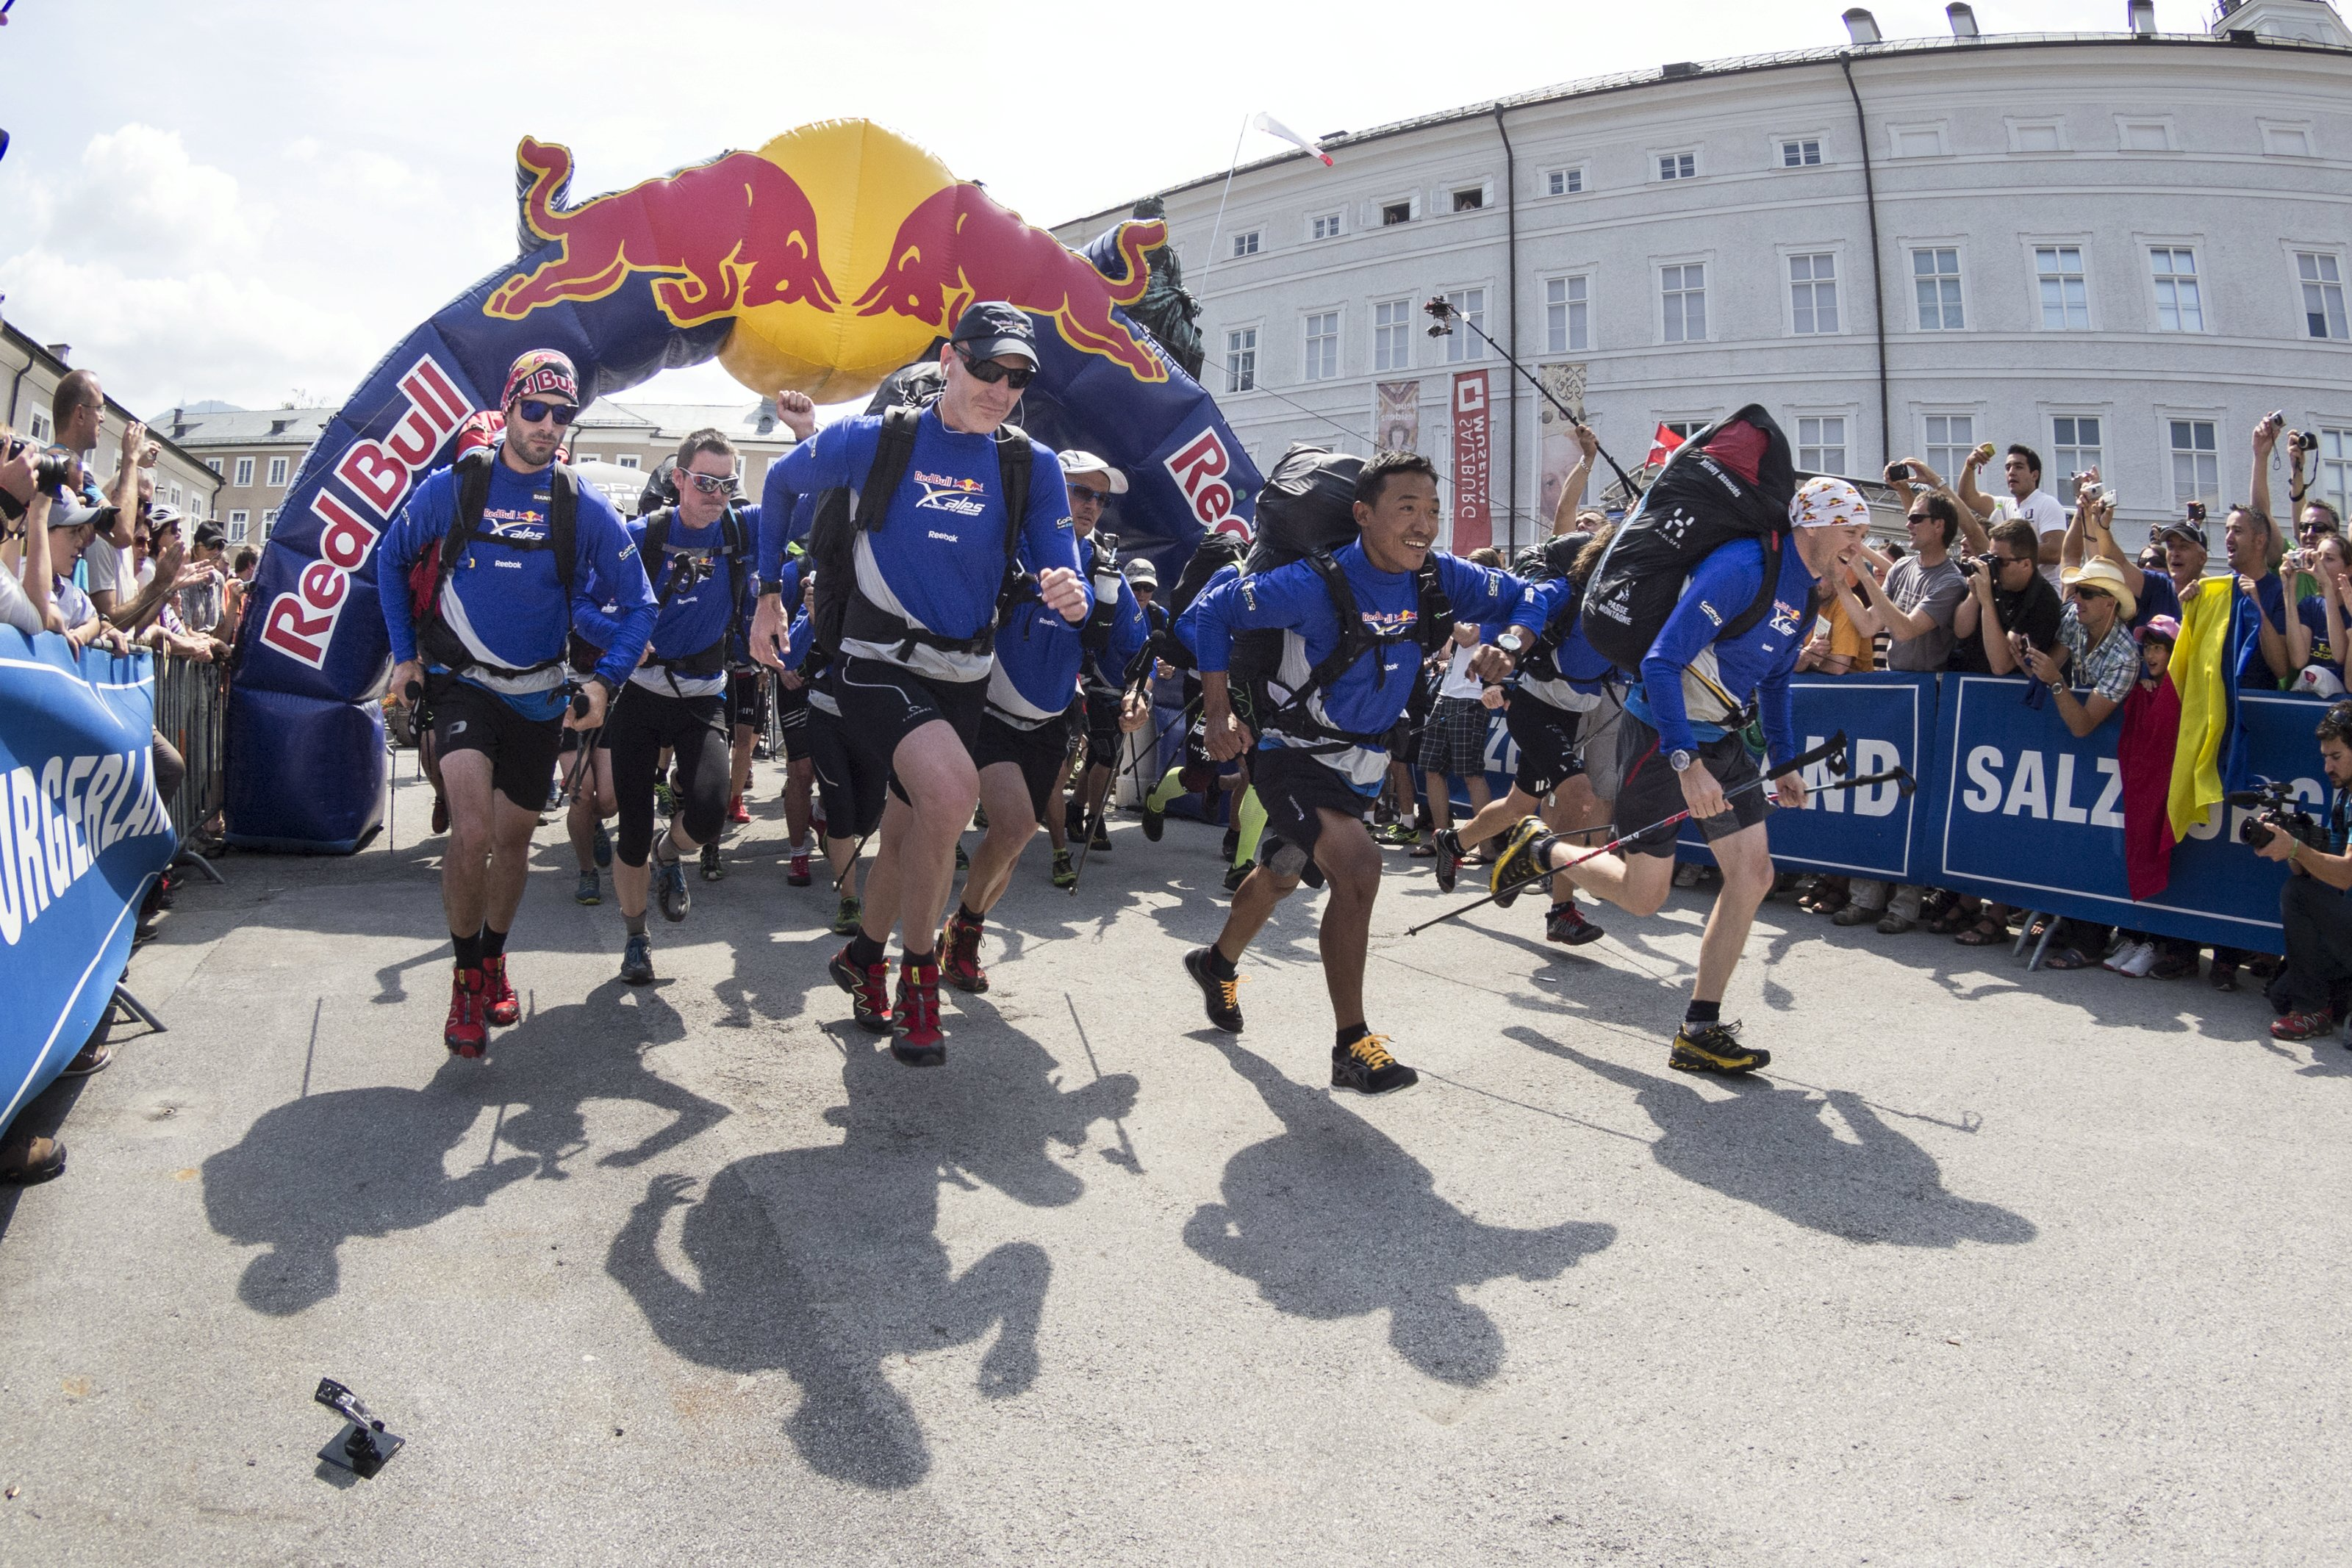 Red Bull X-Alps 2013 - The World